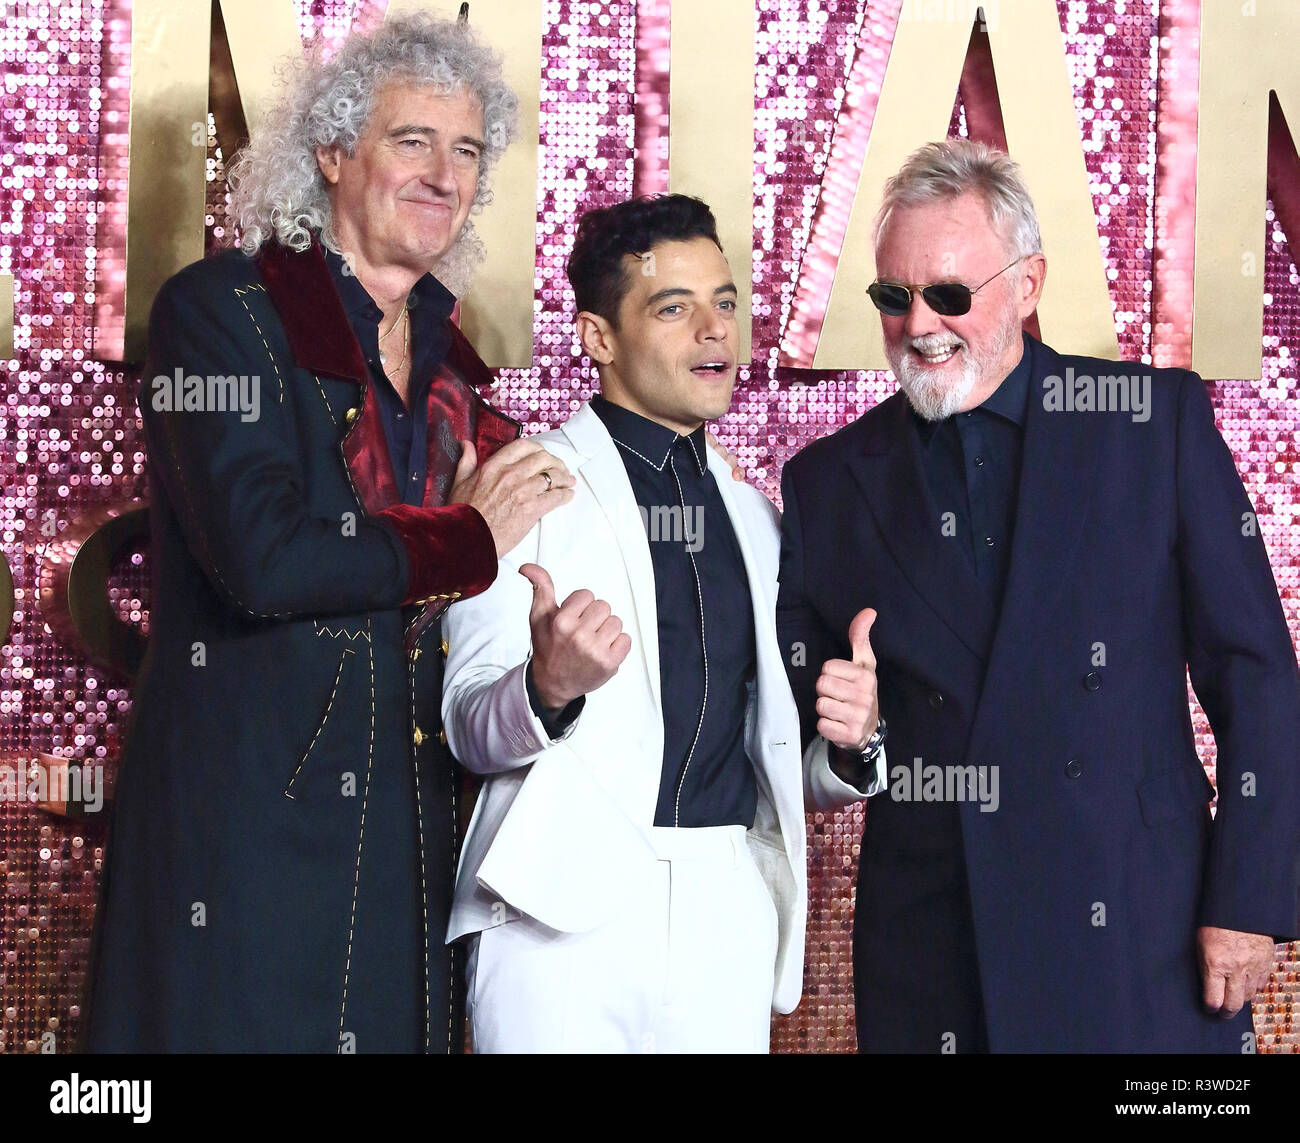 Bohemian Rhapsody UK Premiere at the SSE Arena Wembley, London  Featuring: Brian May, Rami Malek, Roger Taylor Where: London, United Kingdom When: 23 Oct 2018 Credit: WENN.com - Stock Image